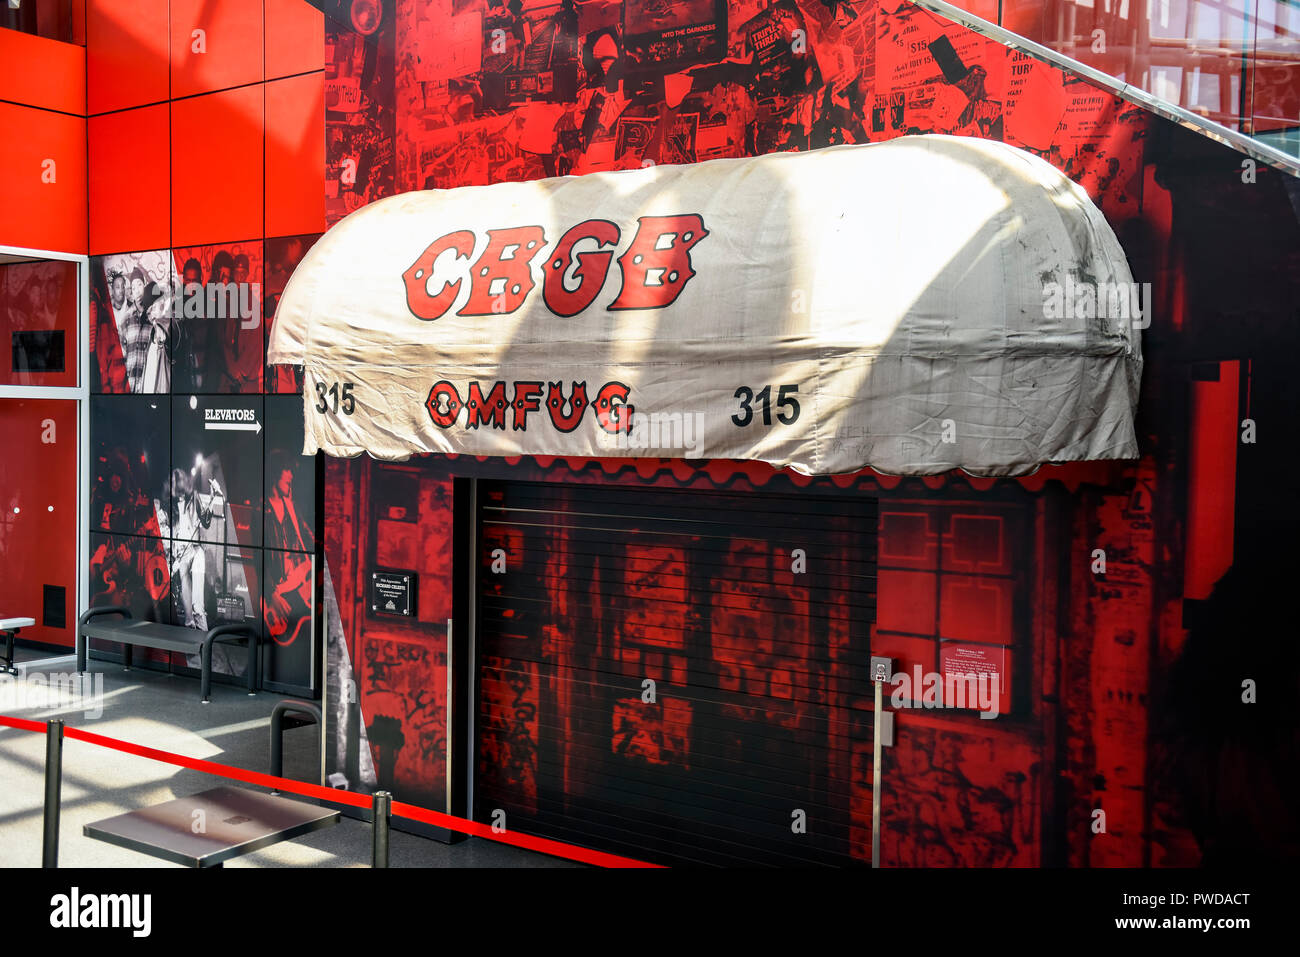 CBGB Awning in the Rock and Roll Hall of Fame. This awning hung over the front door from the late 1980's until it closed in 2006. - Stock Image